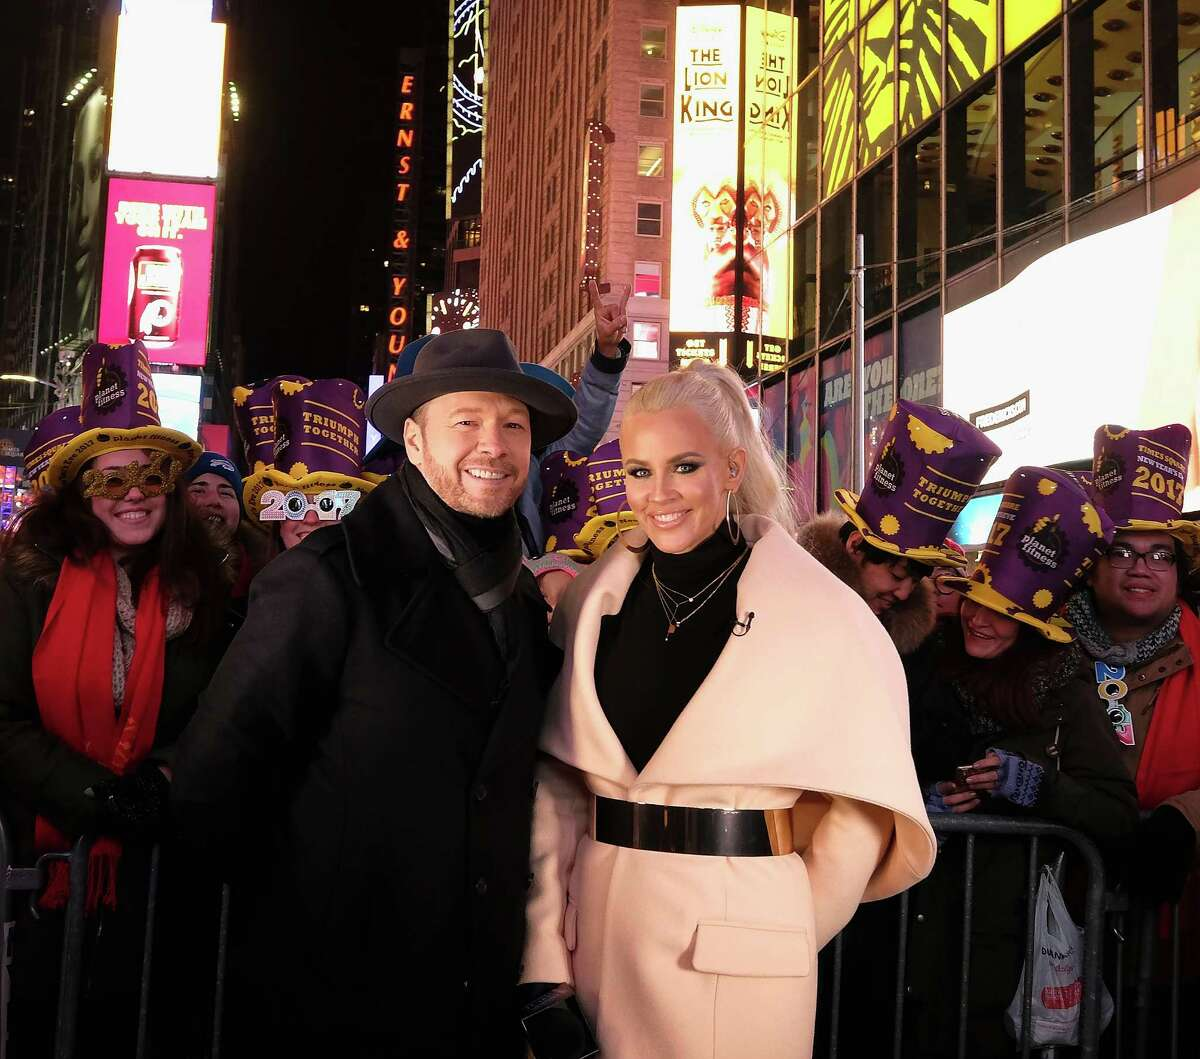 NEW YORK, NY - DECEMBER 31: Donnie Wahlberg and Jenny McCarthy attend New Year's Eve 2017 in Times Square n December 31, 2016 in New York City. (Photo by Dimitrios Kambouris/Getty Images)